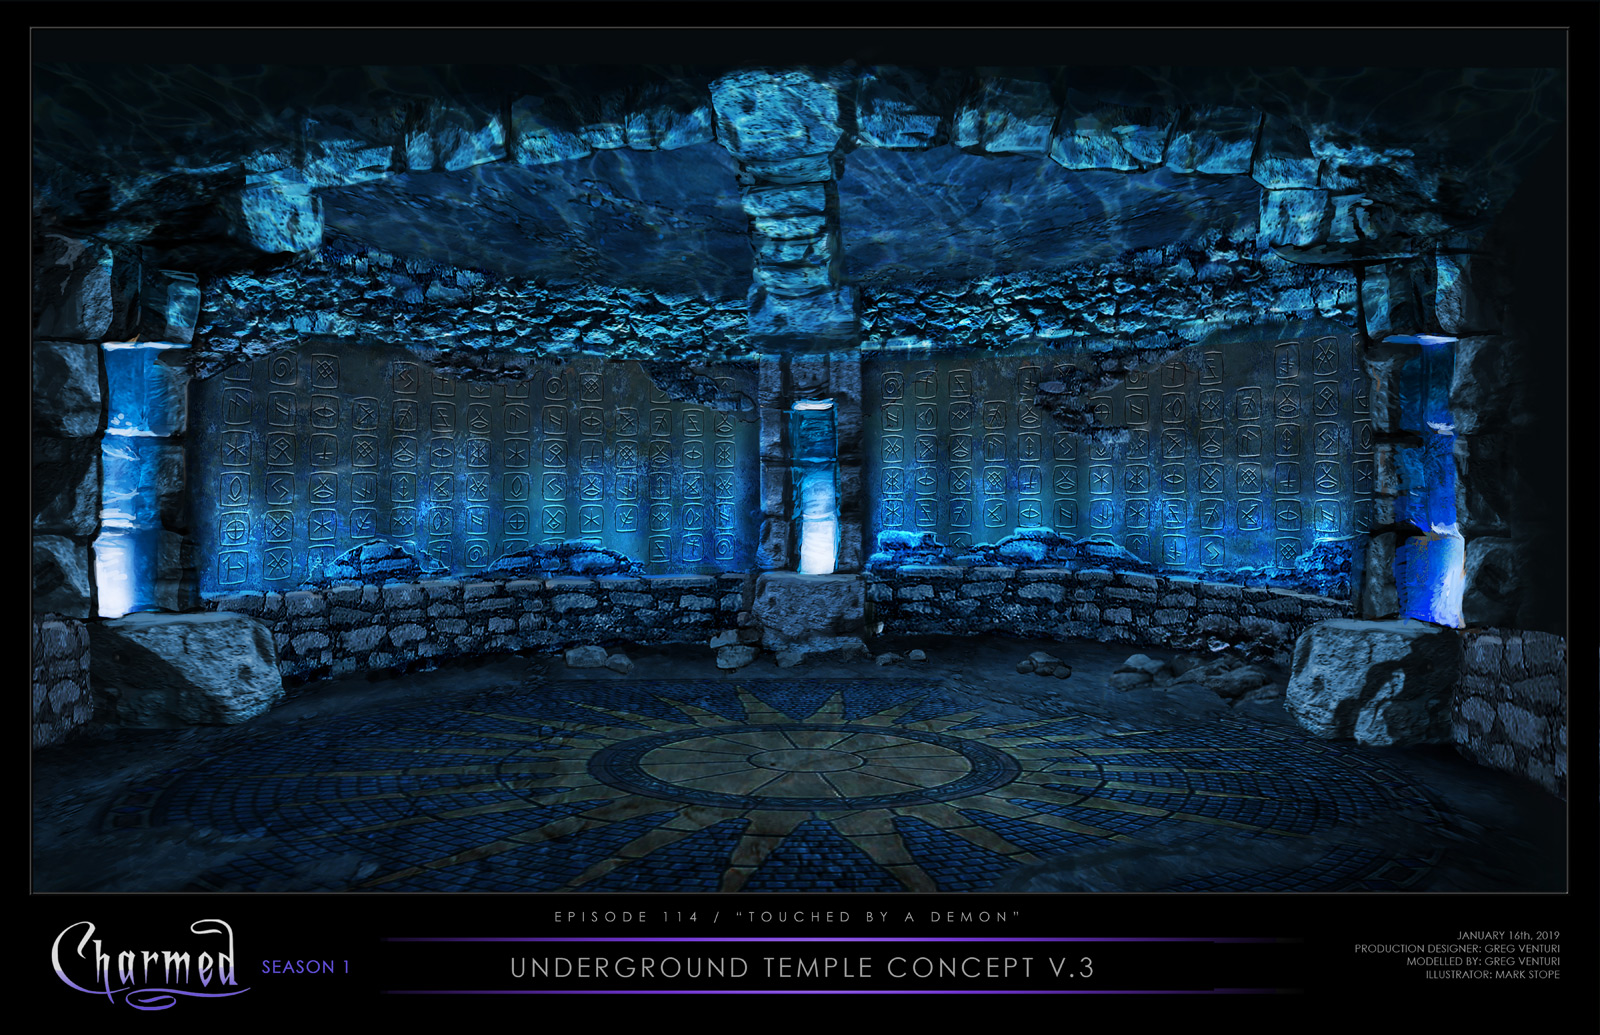 CHARMED: S1 - ANCIENT UNDERGROUND TEMPLE - CONCEPT ILLUSTRATION